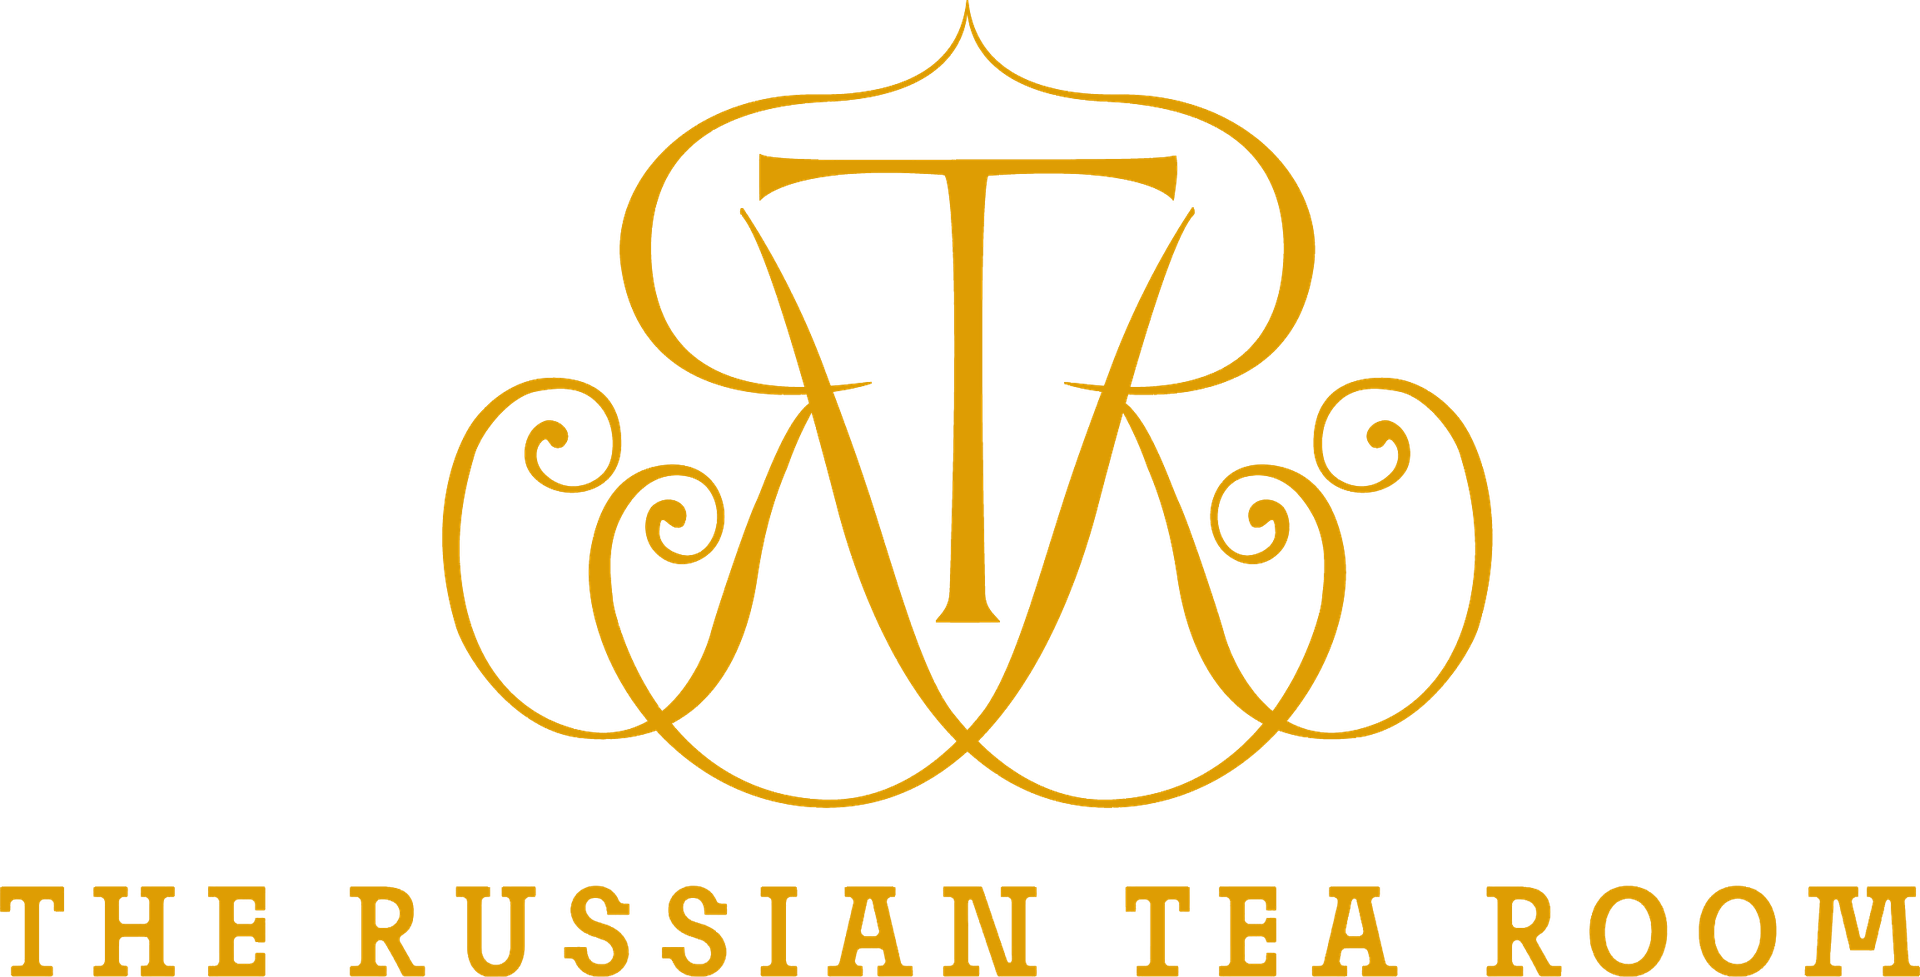 The Russian Tea Room | Iconic Restaurant | Midtown | Central